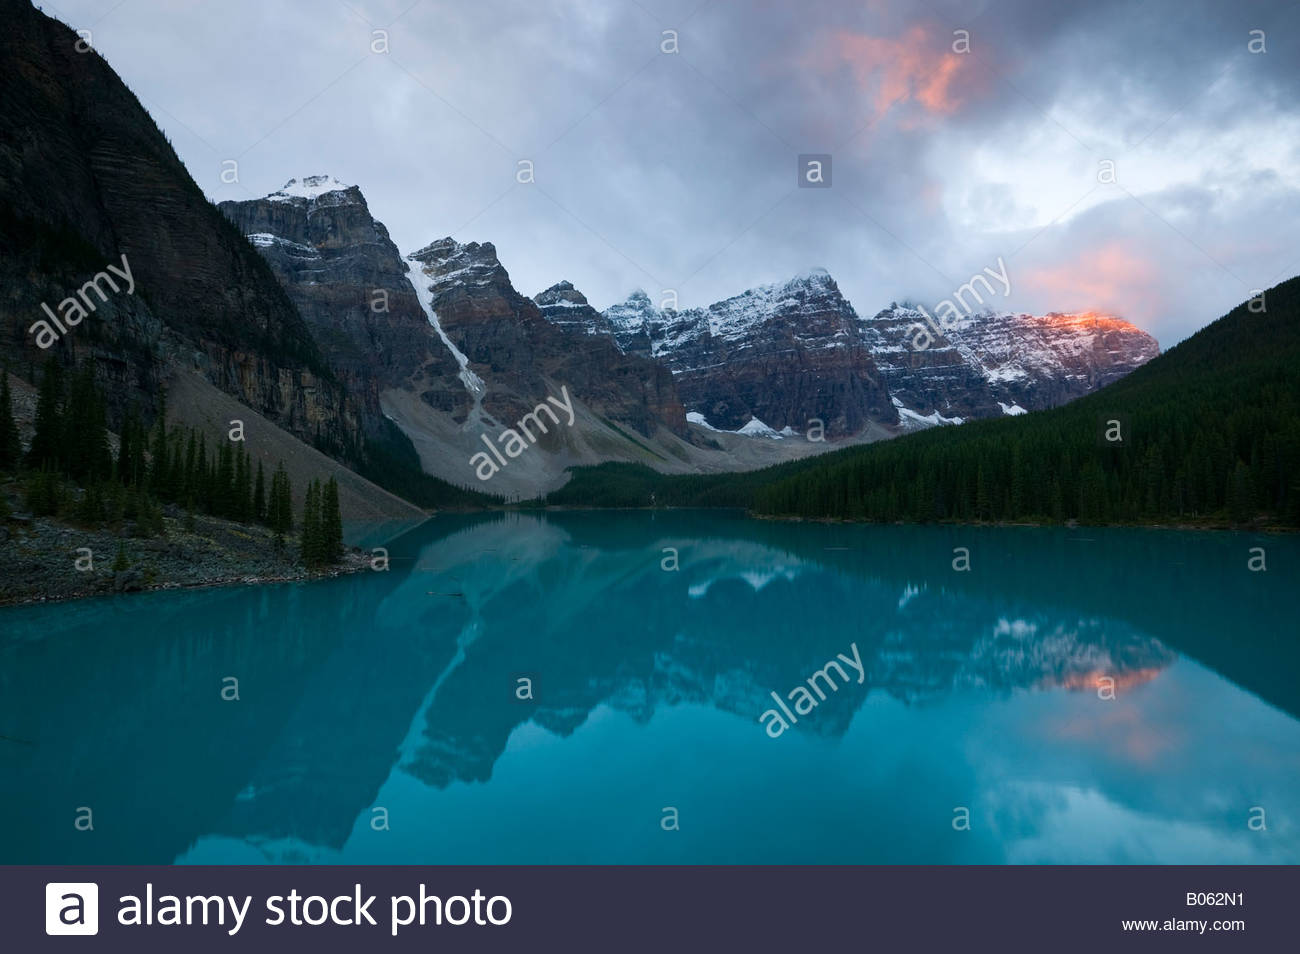 Several mountains in the Canadian Rockies tower over Moraine Lake located in Banff National Park. - Stock Image